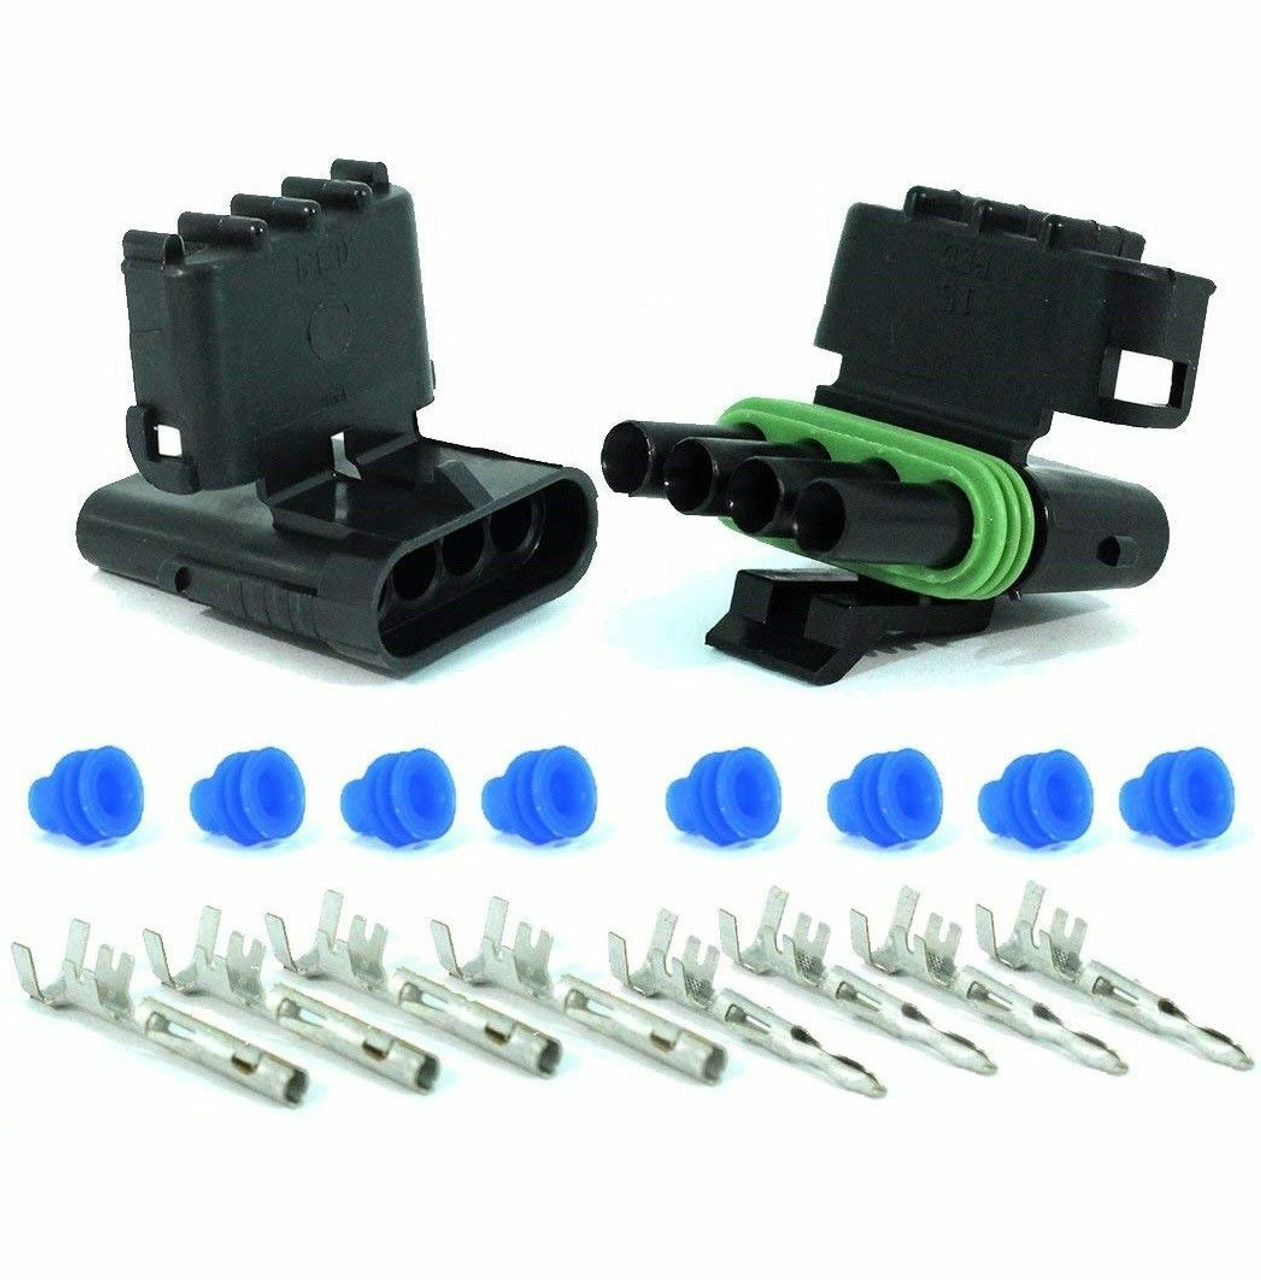 Weather Pack 10 sets Kit 2 3 4 6 Pin Way Waterproof Electrical Wire automotive Connector Plug 1P